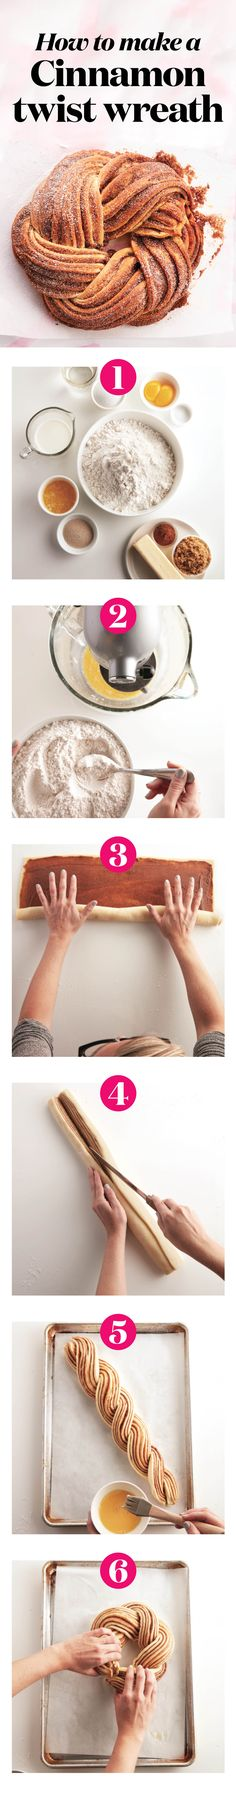 How to make a cinnamon-twist wreath   It's exactly like making cinnamon buns — with just 3 extra steps. Find out how to roll, twist and fold your way to beautiful Easter bread.